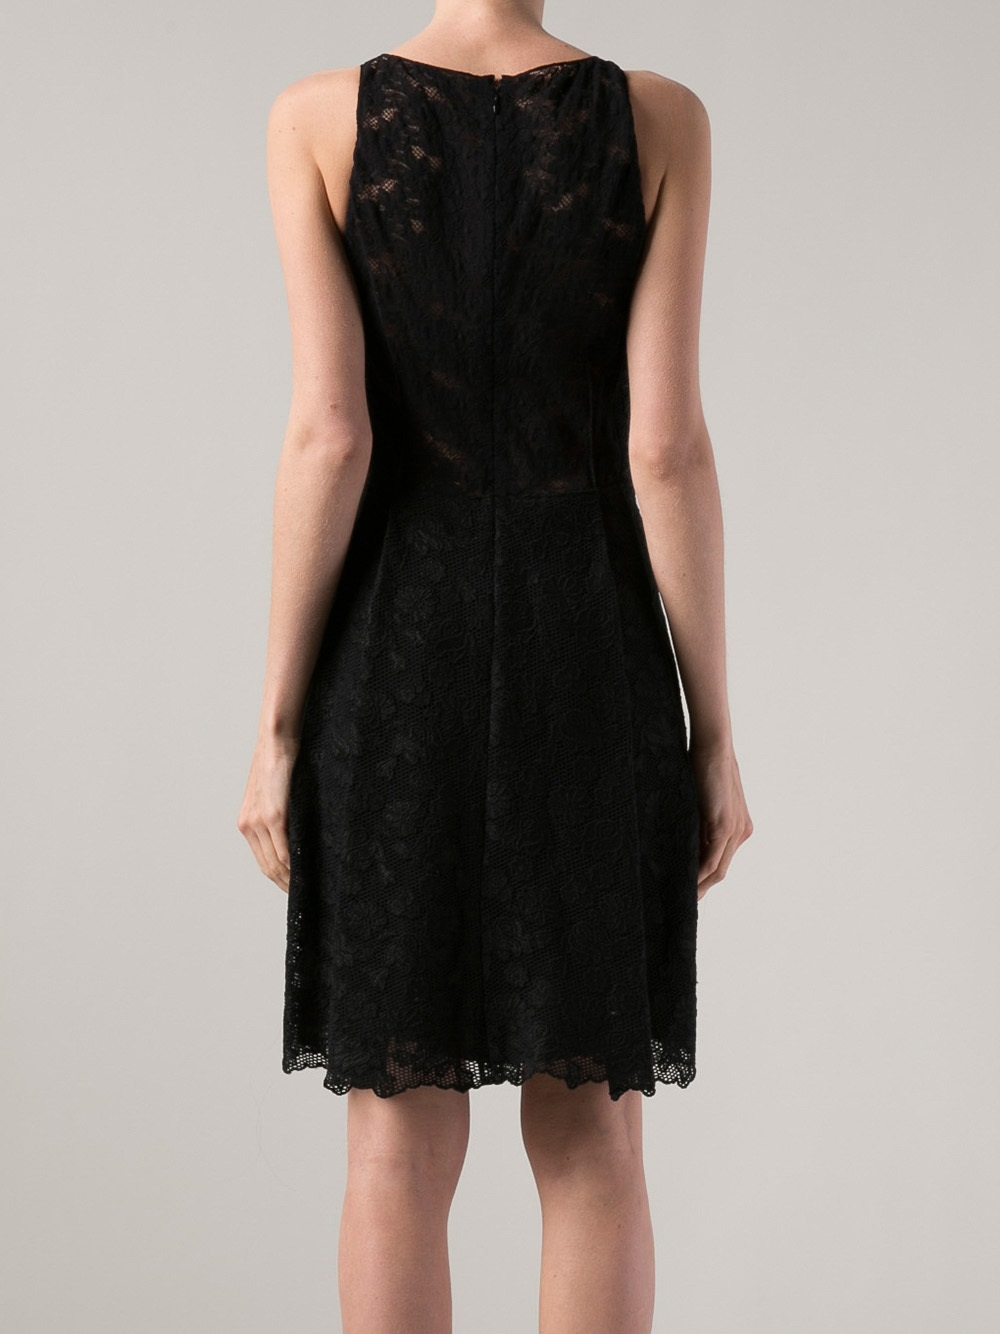 High Low Black Sleeveless Belted Lace Dress on sale only US$ now, buy cheap High Low Black Sleeveless Belted Lace Dress at bloggeri.tk